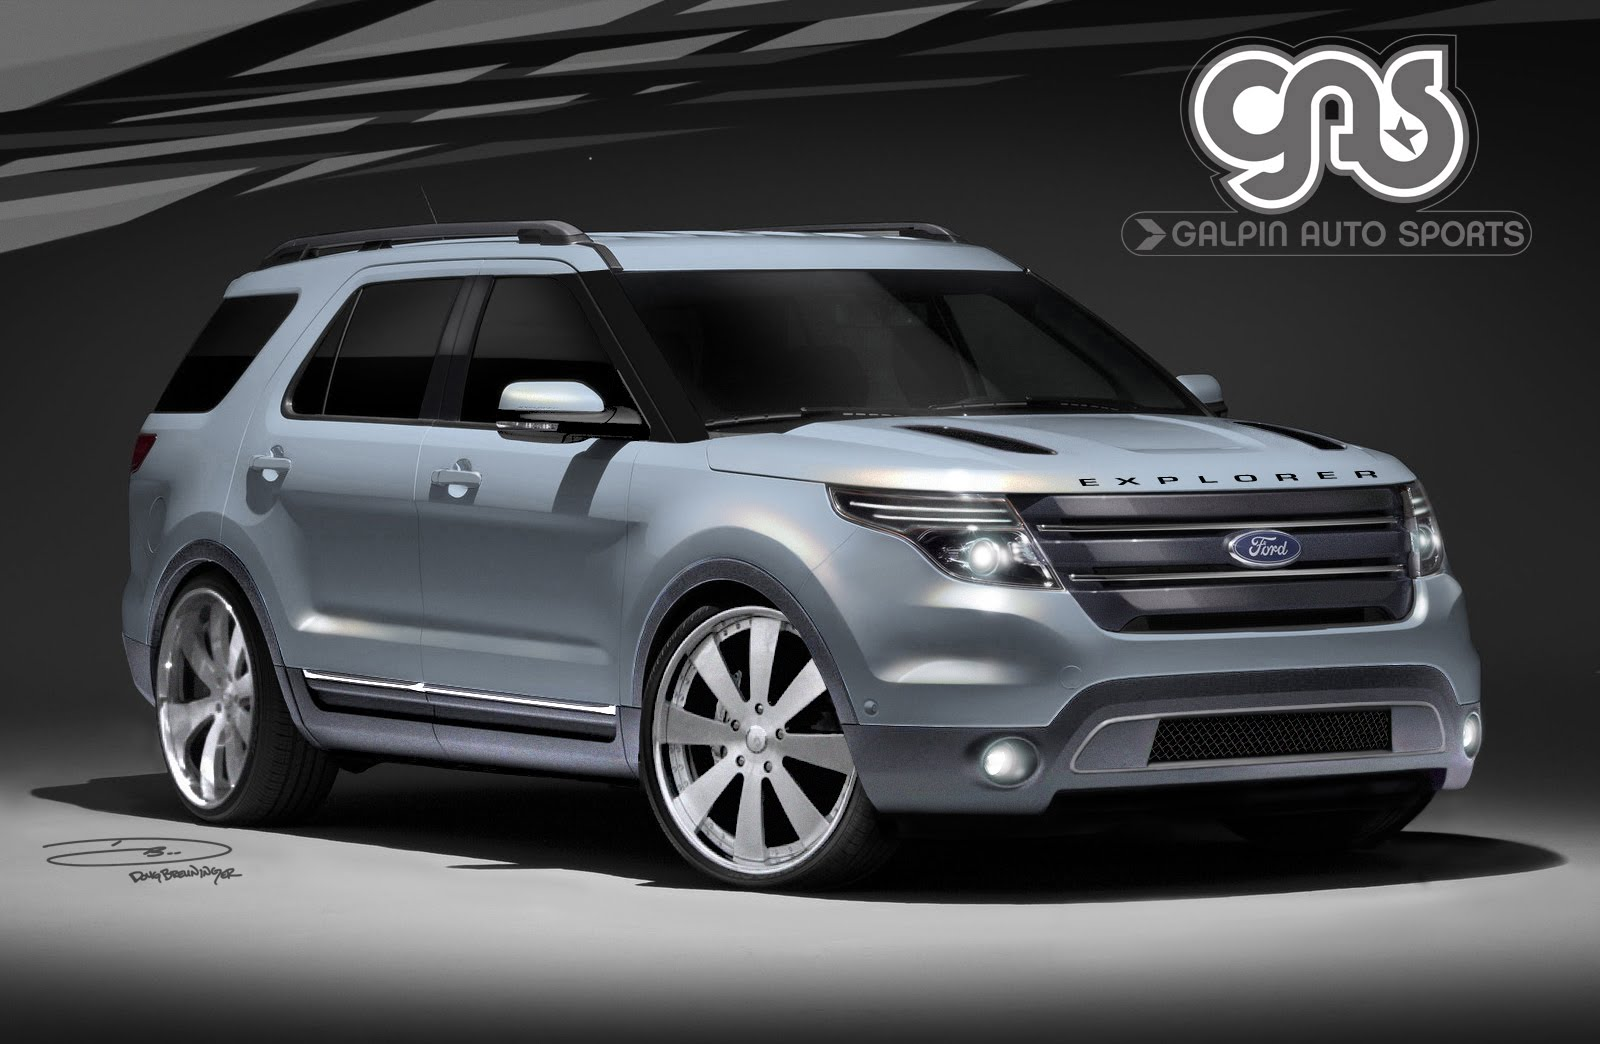 2011 Customized Ford Explorer, Edge, Taurus, Fusions & Lincoln MKX